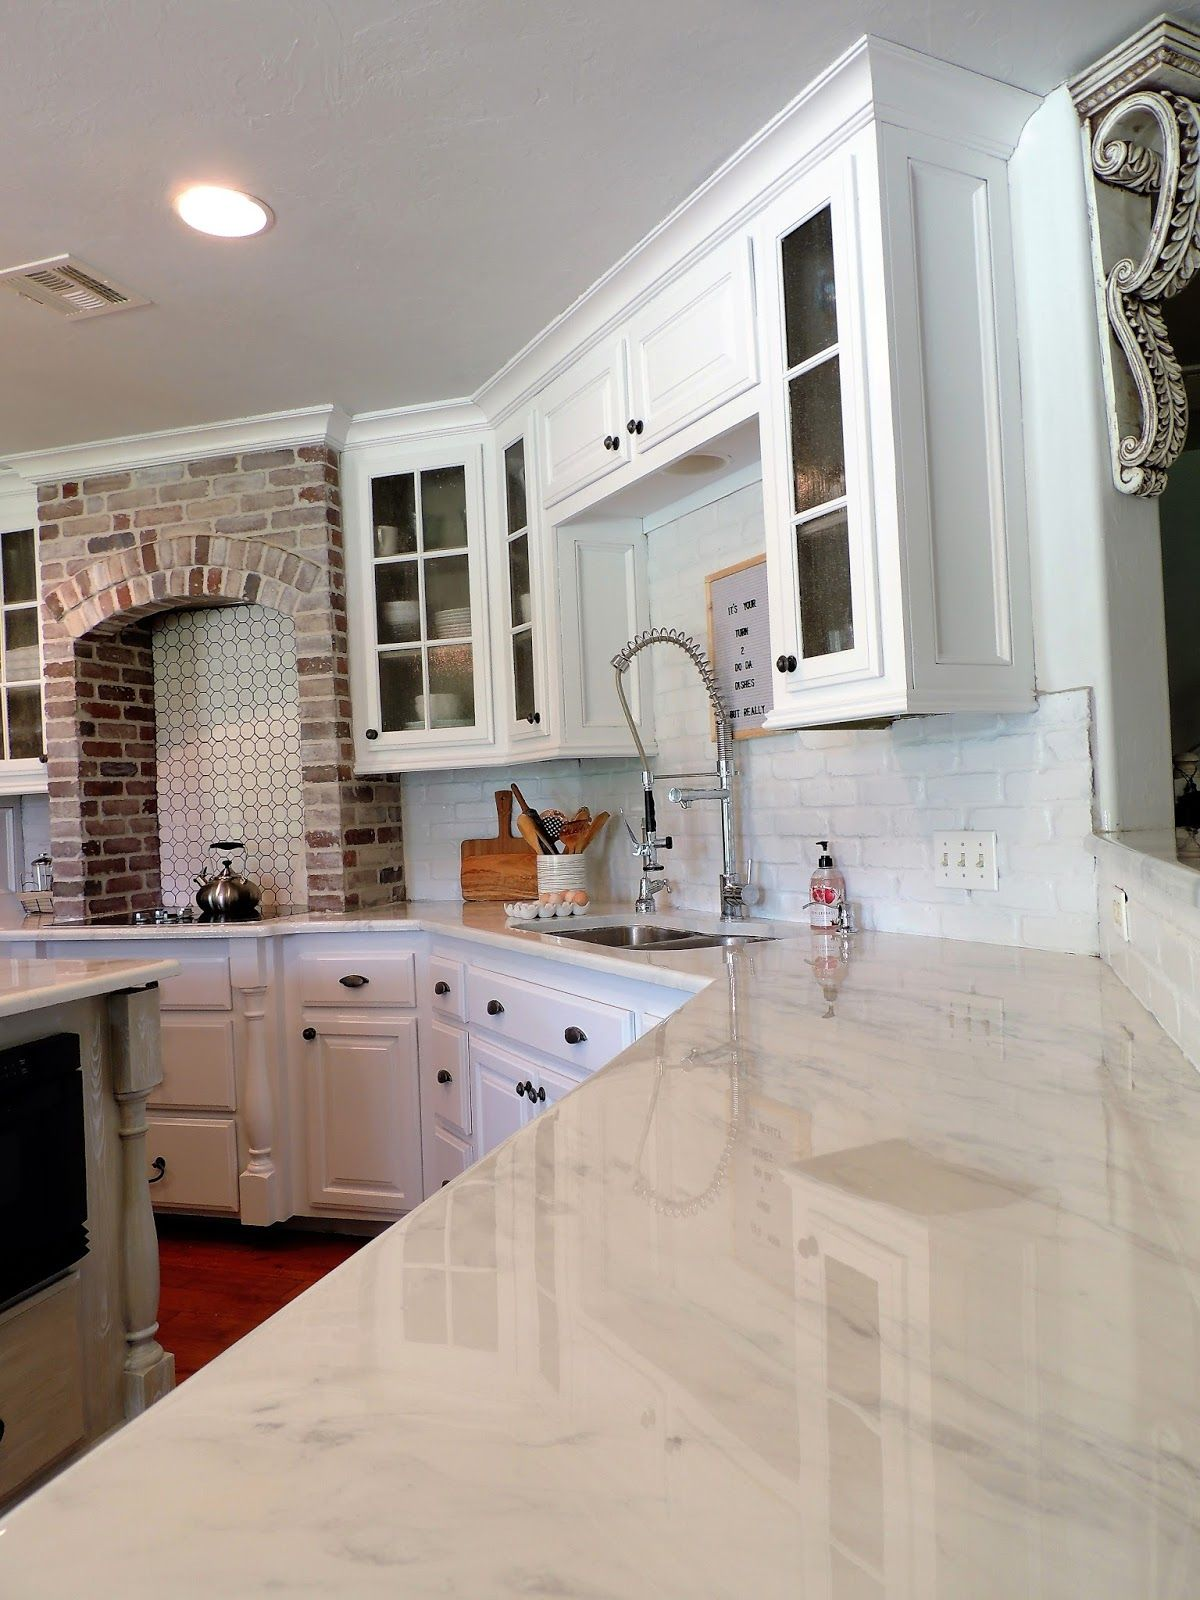 White Concrete Countertops Over Laminate